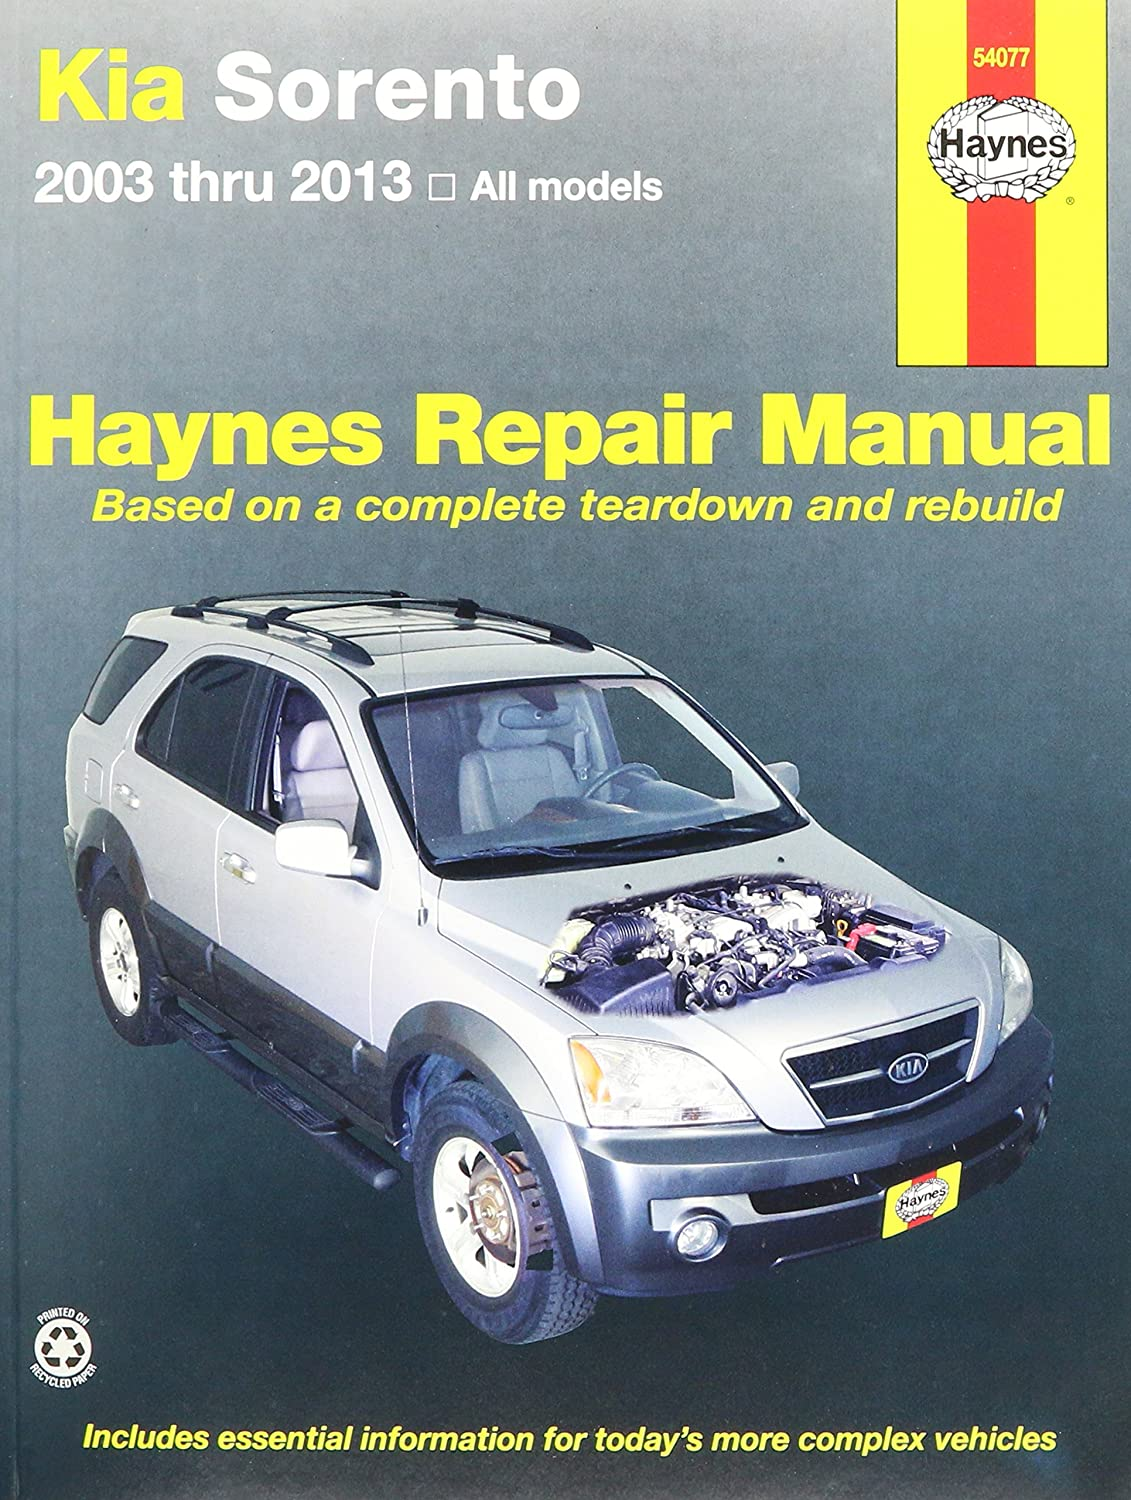 Amazon.com: Haynes Repair Manuals Kia Sorento 2003-2013 (54077): Automotive